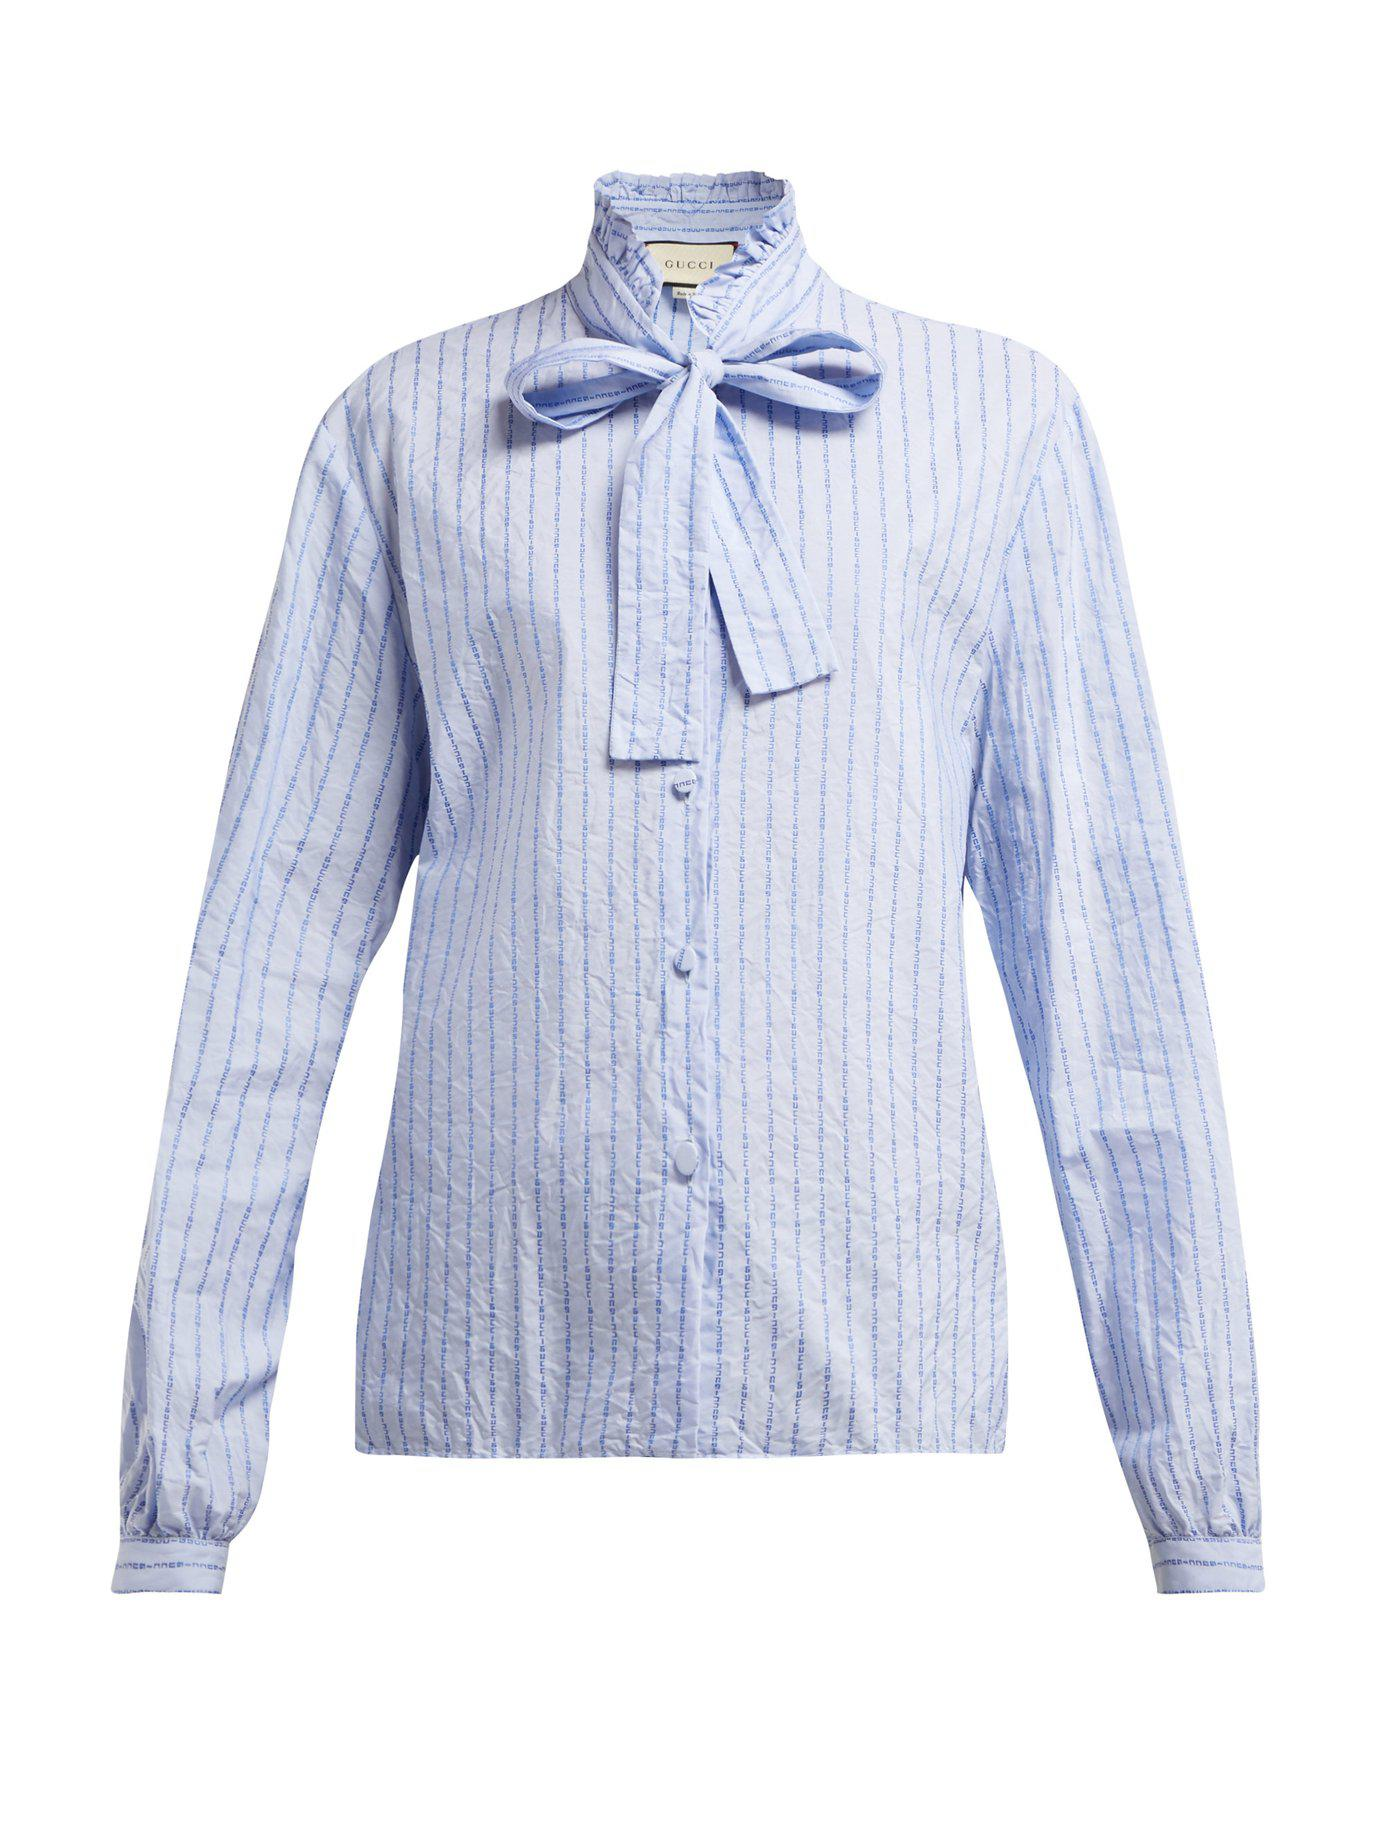 17ce5b3ce730f7 Gucci Pussy Bow Striped Logo Jacquard Cotton Shirt in Blue - Lyst